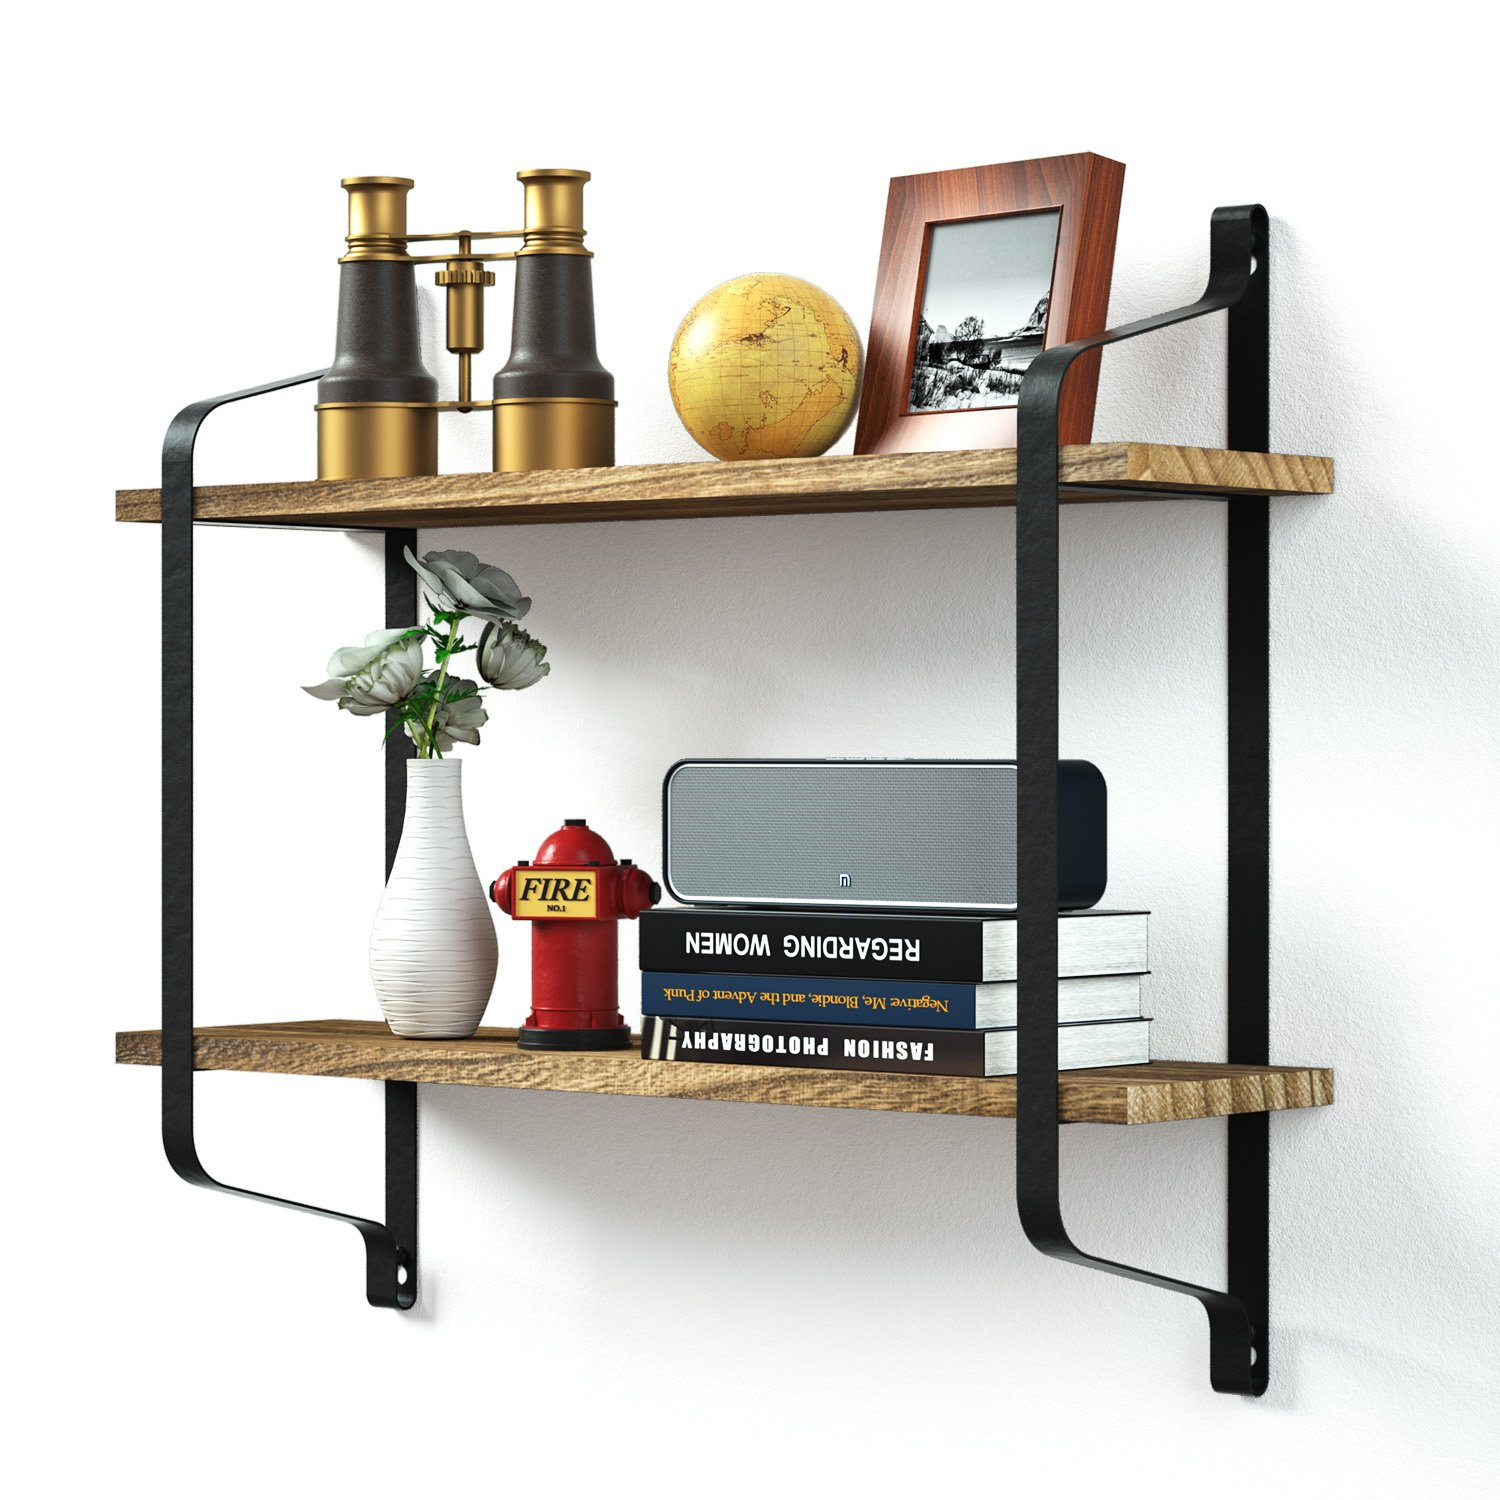 Love-KANKEI Rustic Floating Shelves Wall Mounted, Industrial Wall Shelves Pantry Living Room Bedroom Kitchen Entryway, 2 Tier Wood Storage Shelf Dark Brown